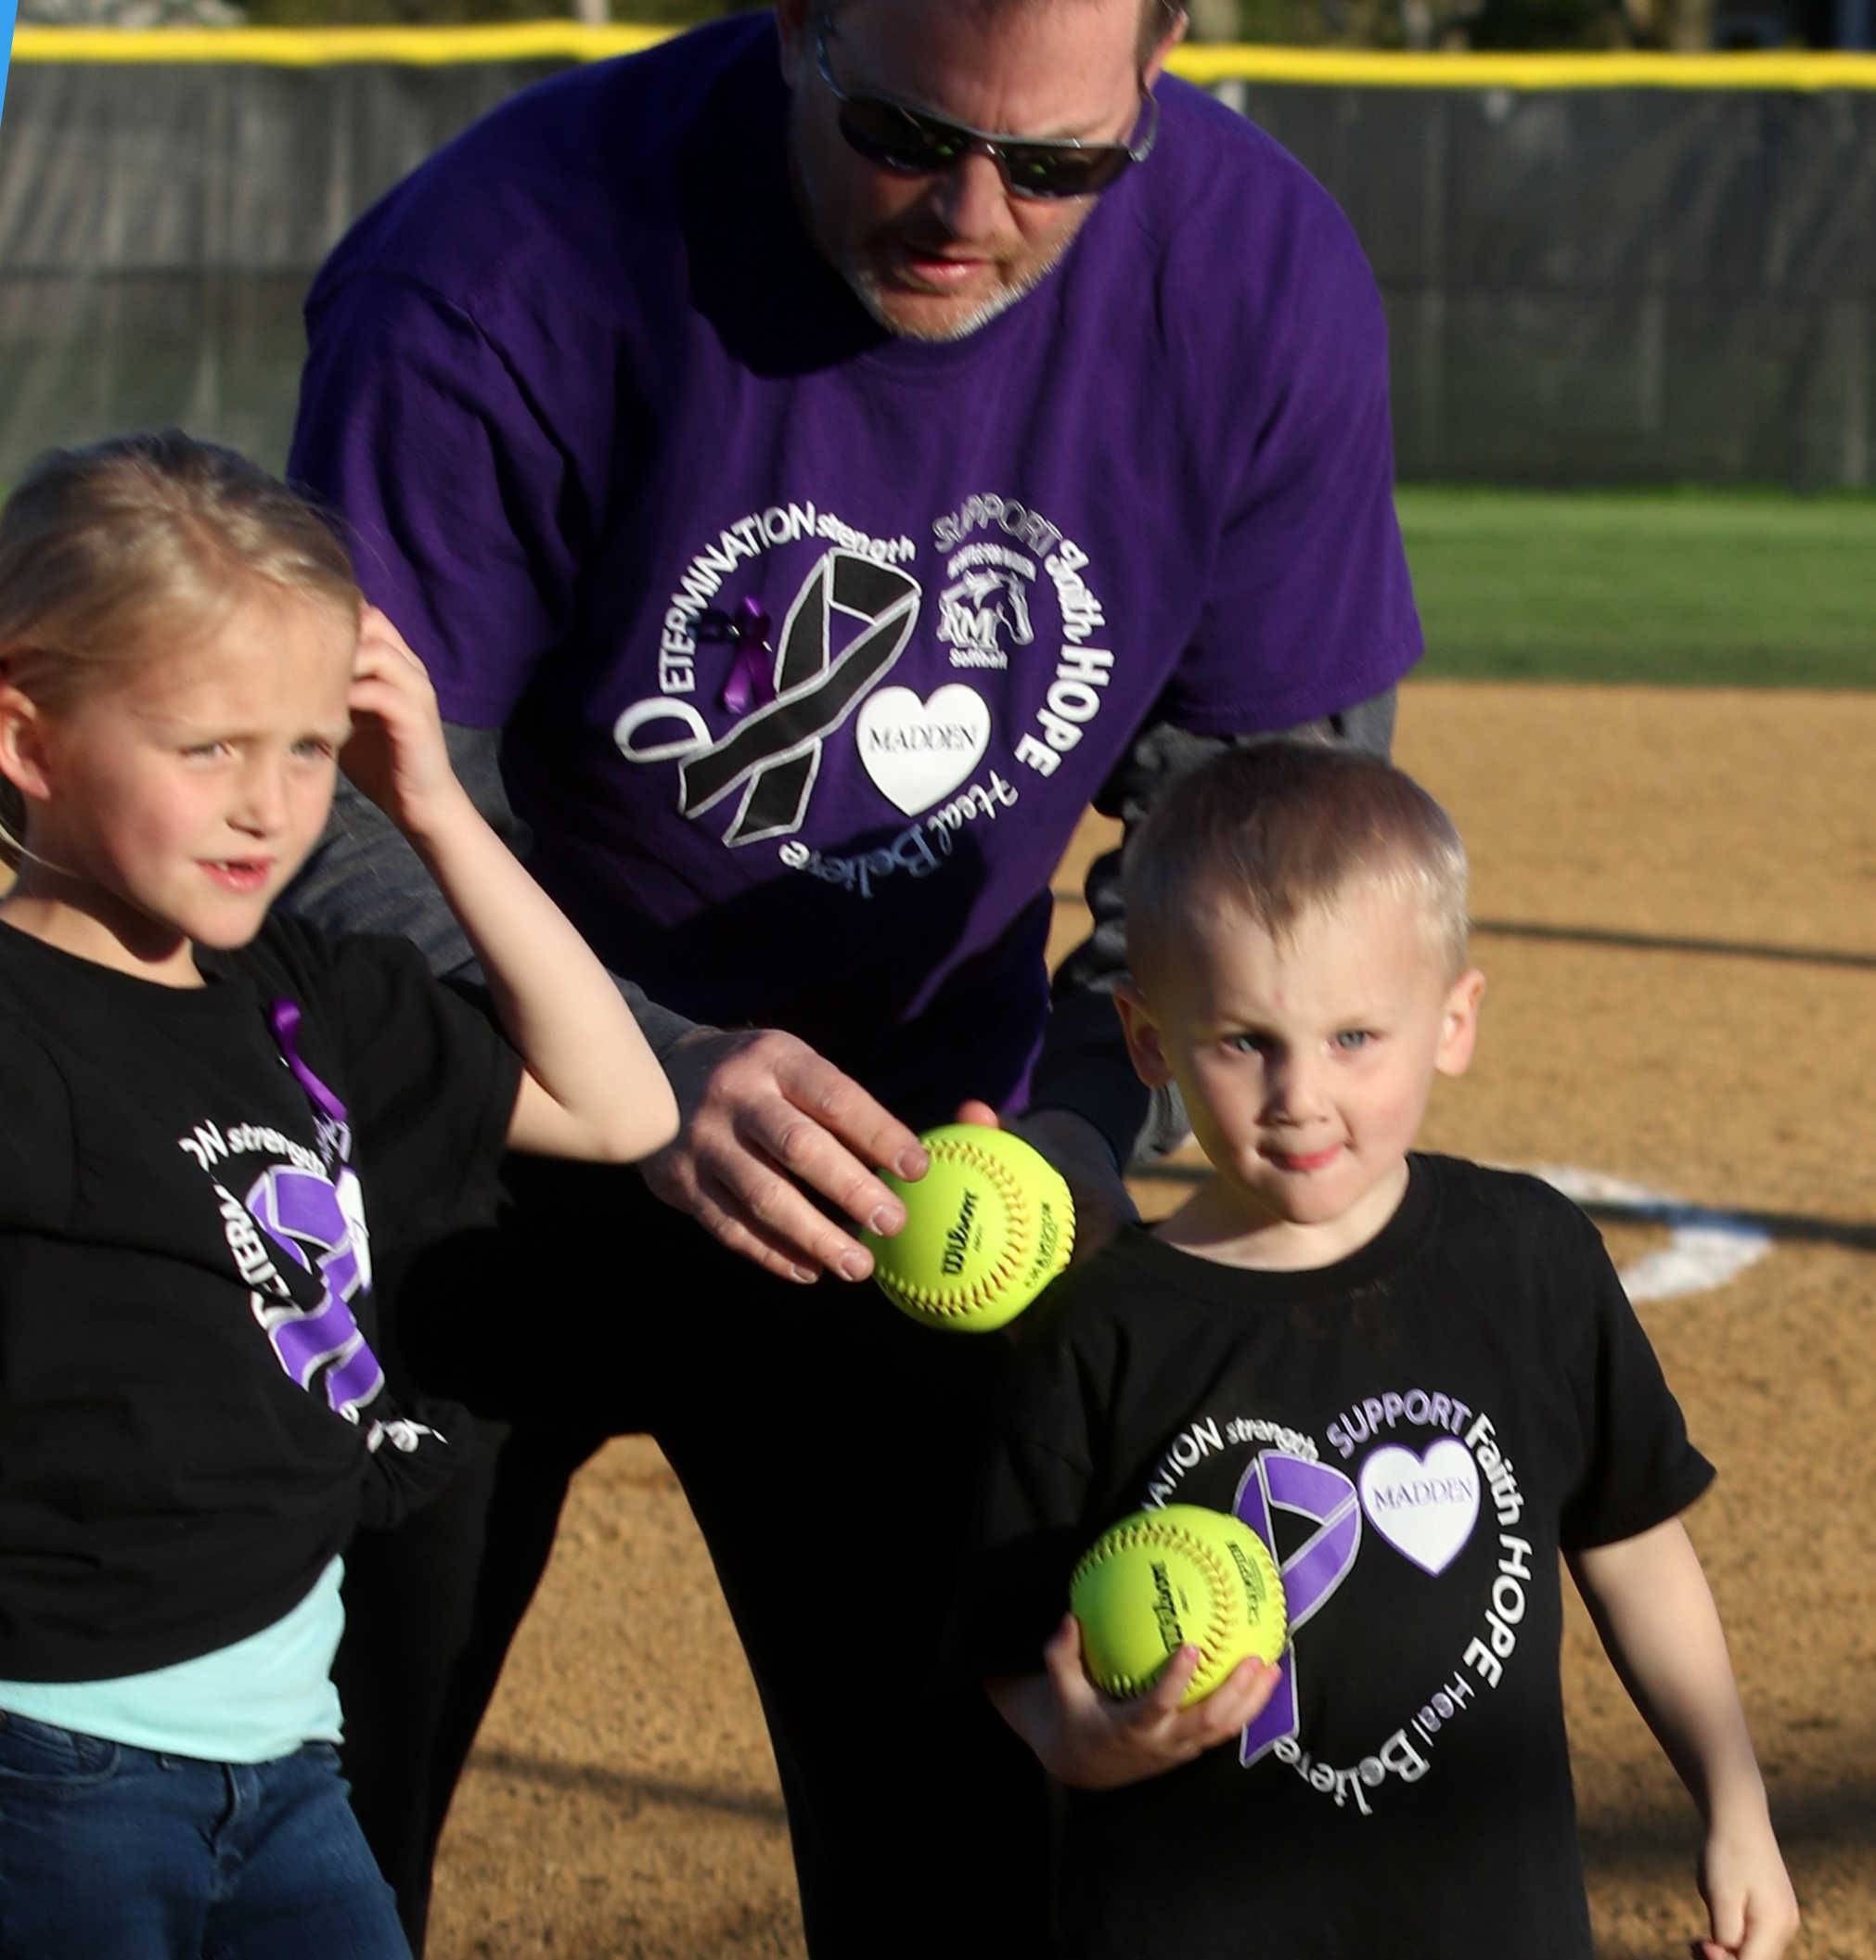 Maive Manz, 6, and her brother Max, 4, children of Rolling Meadows assistant coach Jeff Manz, center, prepare to toss out ceremonial first pitches as part of a special doubleheader of varsity softball games at Rolling Meadows High School on Monday. Fremd won 5-0 over Hersey in game one while Rolling Meadows played Palatine in the second game. The Manz children tossed out ceremonial first pitches in honor of their younger brother, Madden, who is being treated for Rett Syndrome.